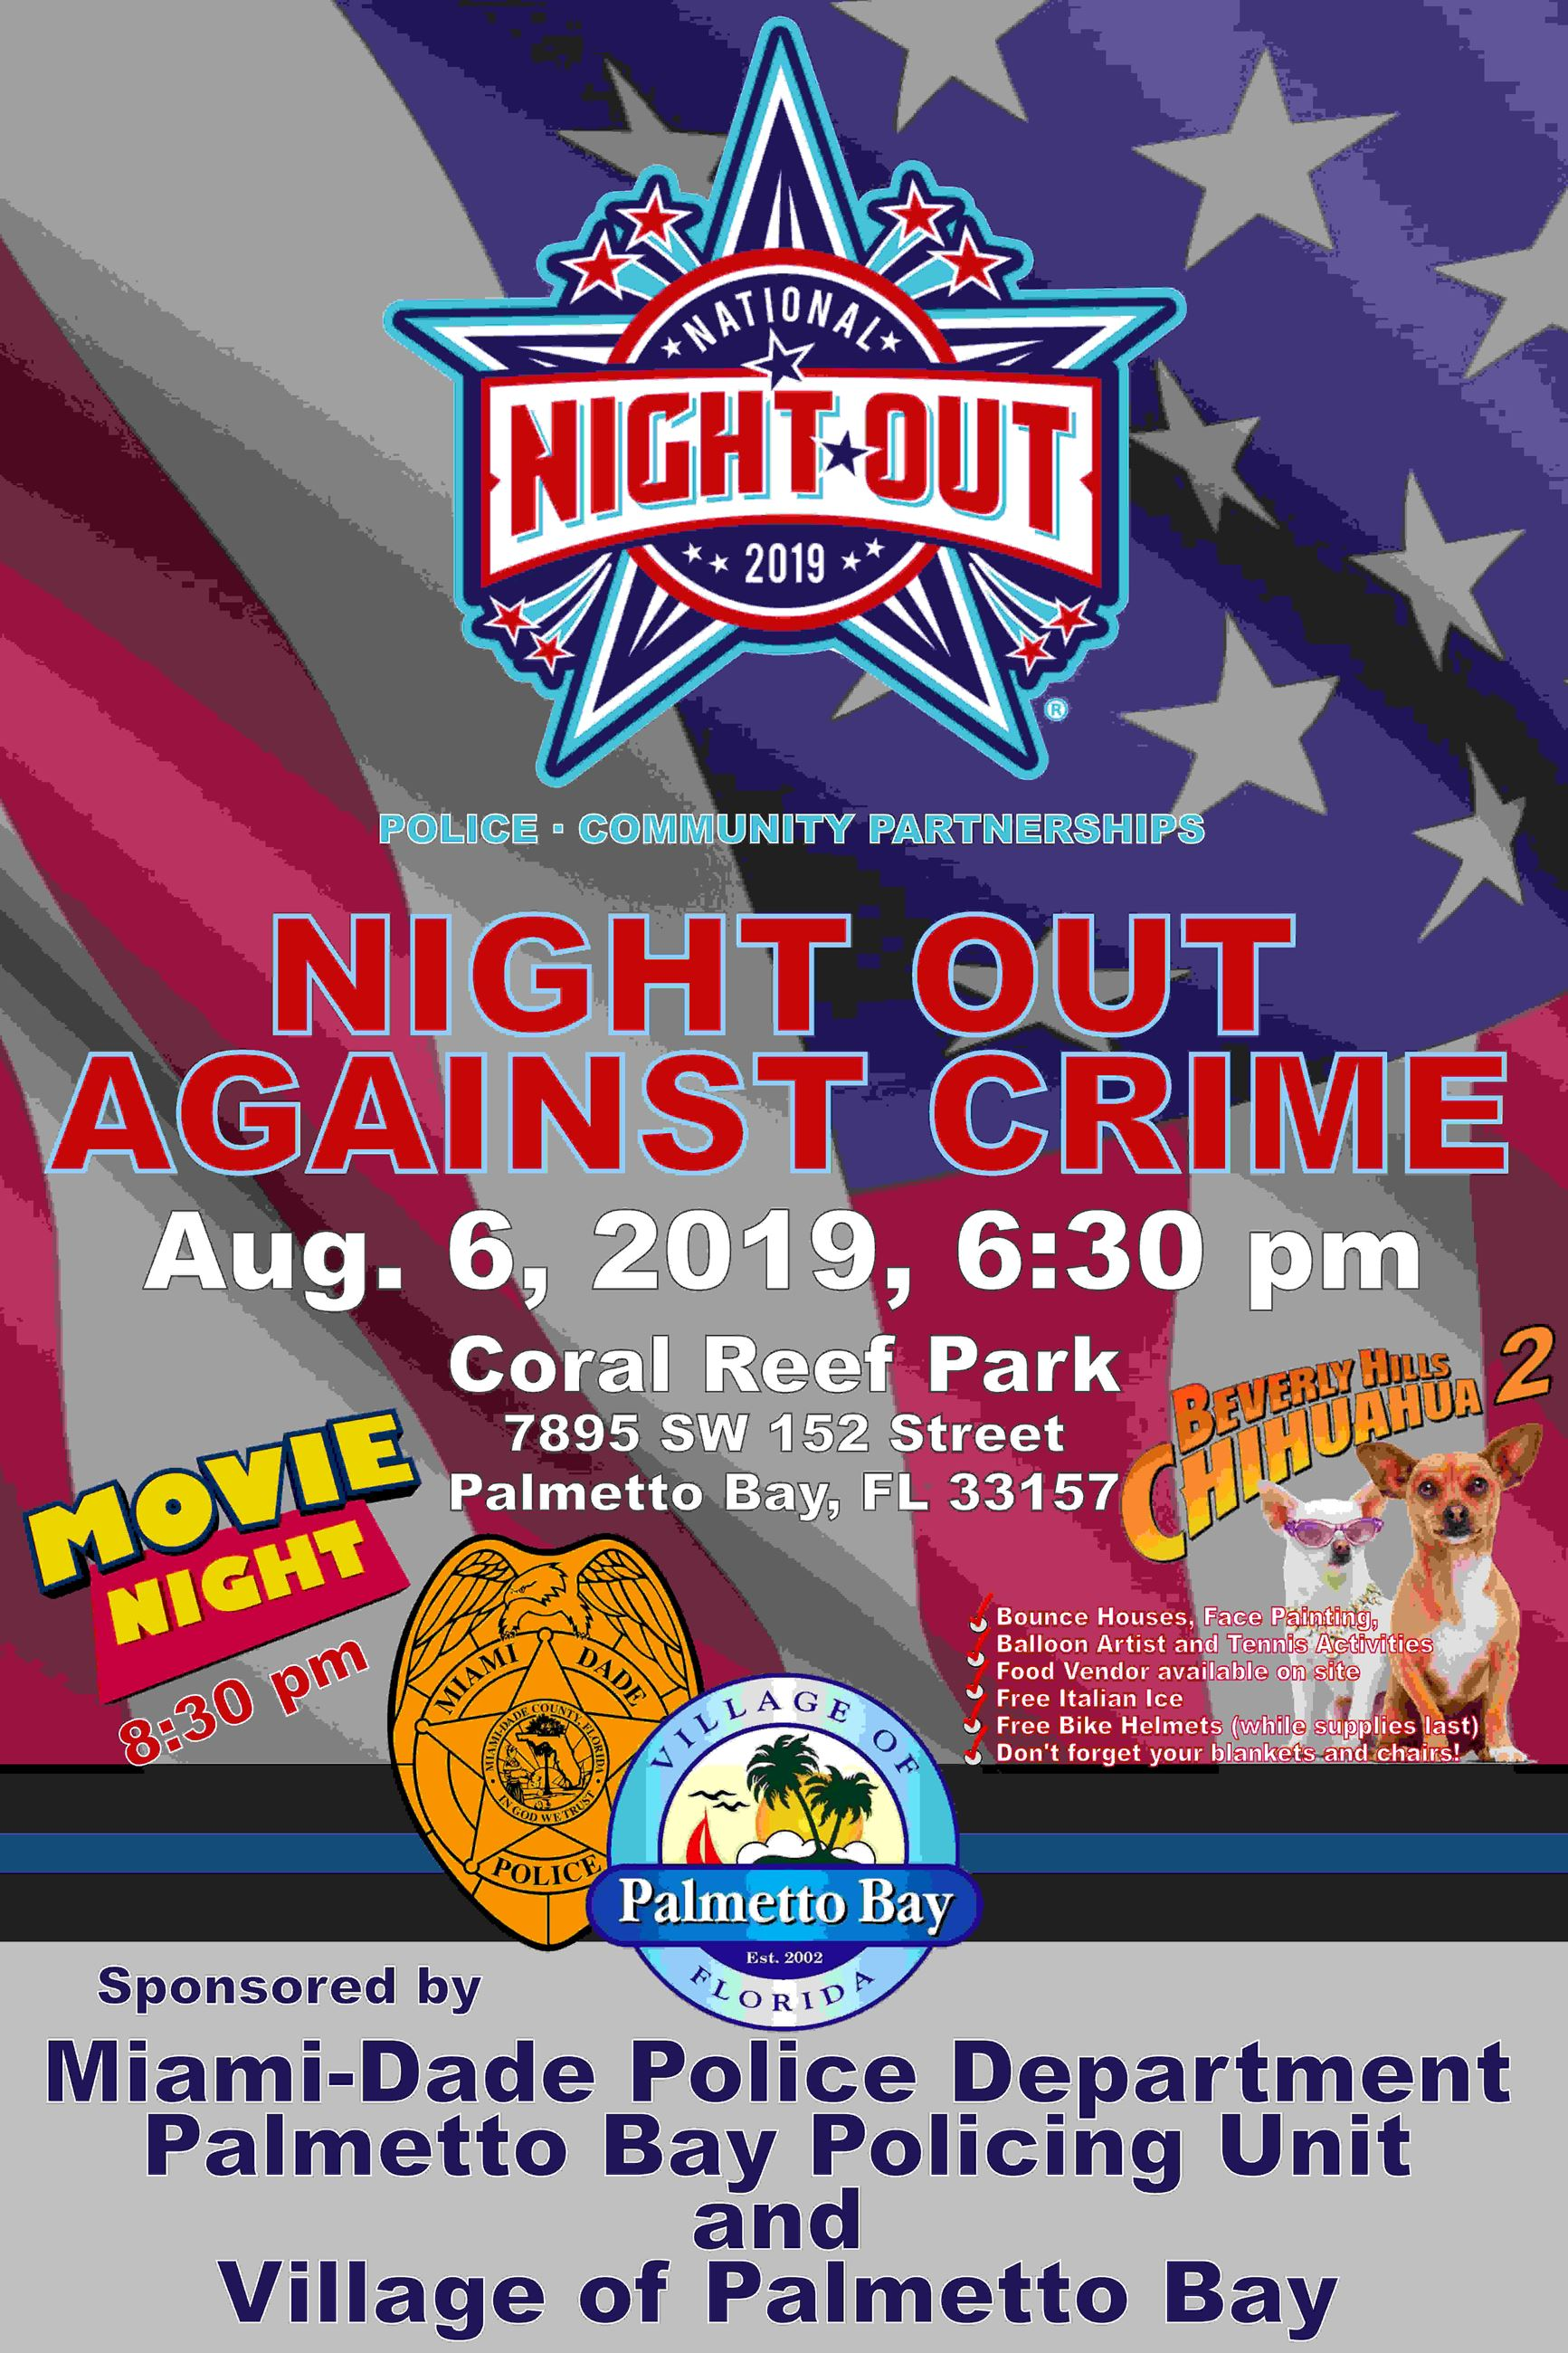 National Night Out, August 6! Festivities start at 6:30pm and movie starts at 8:30pm